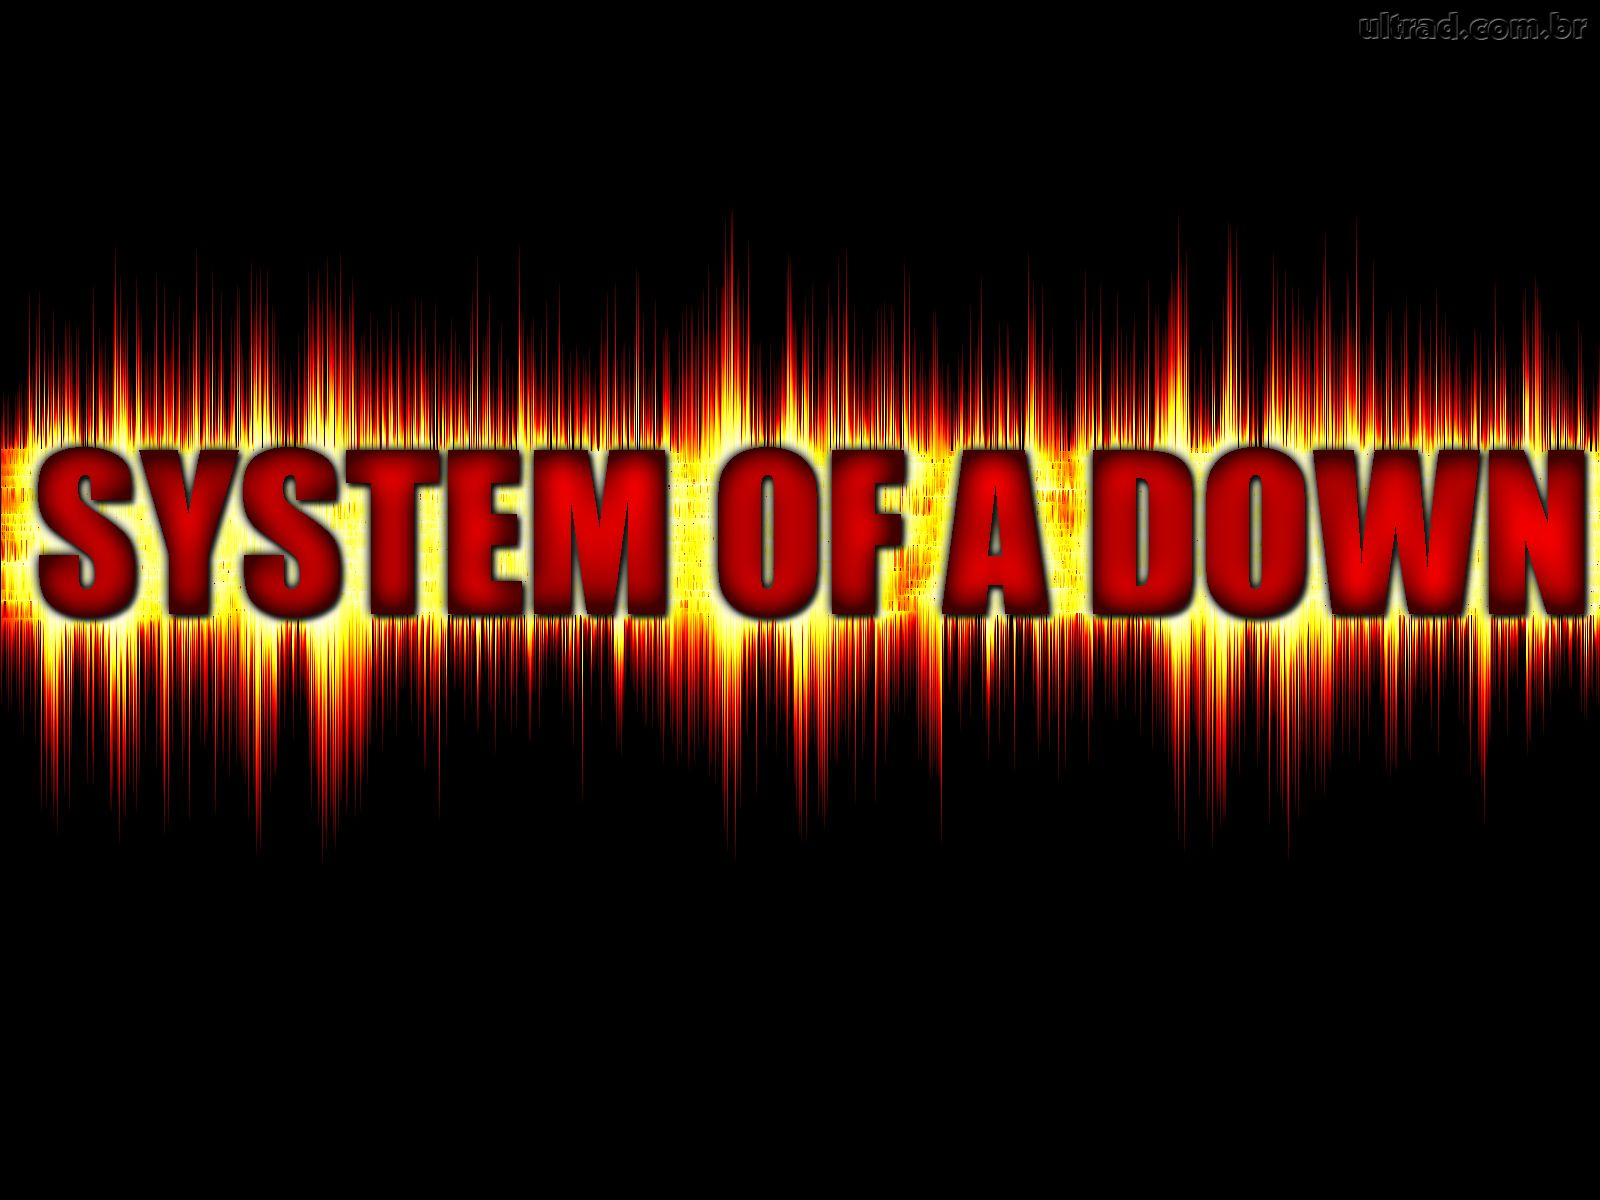 Angels Downloads Wallpapers   System Of a Down 1600x1200